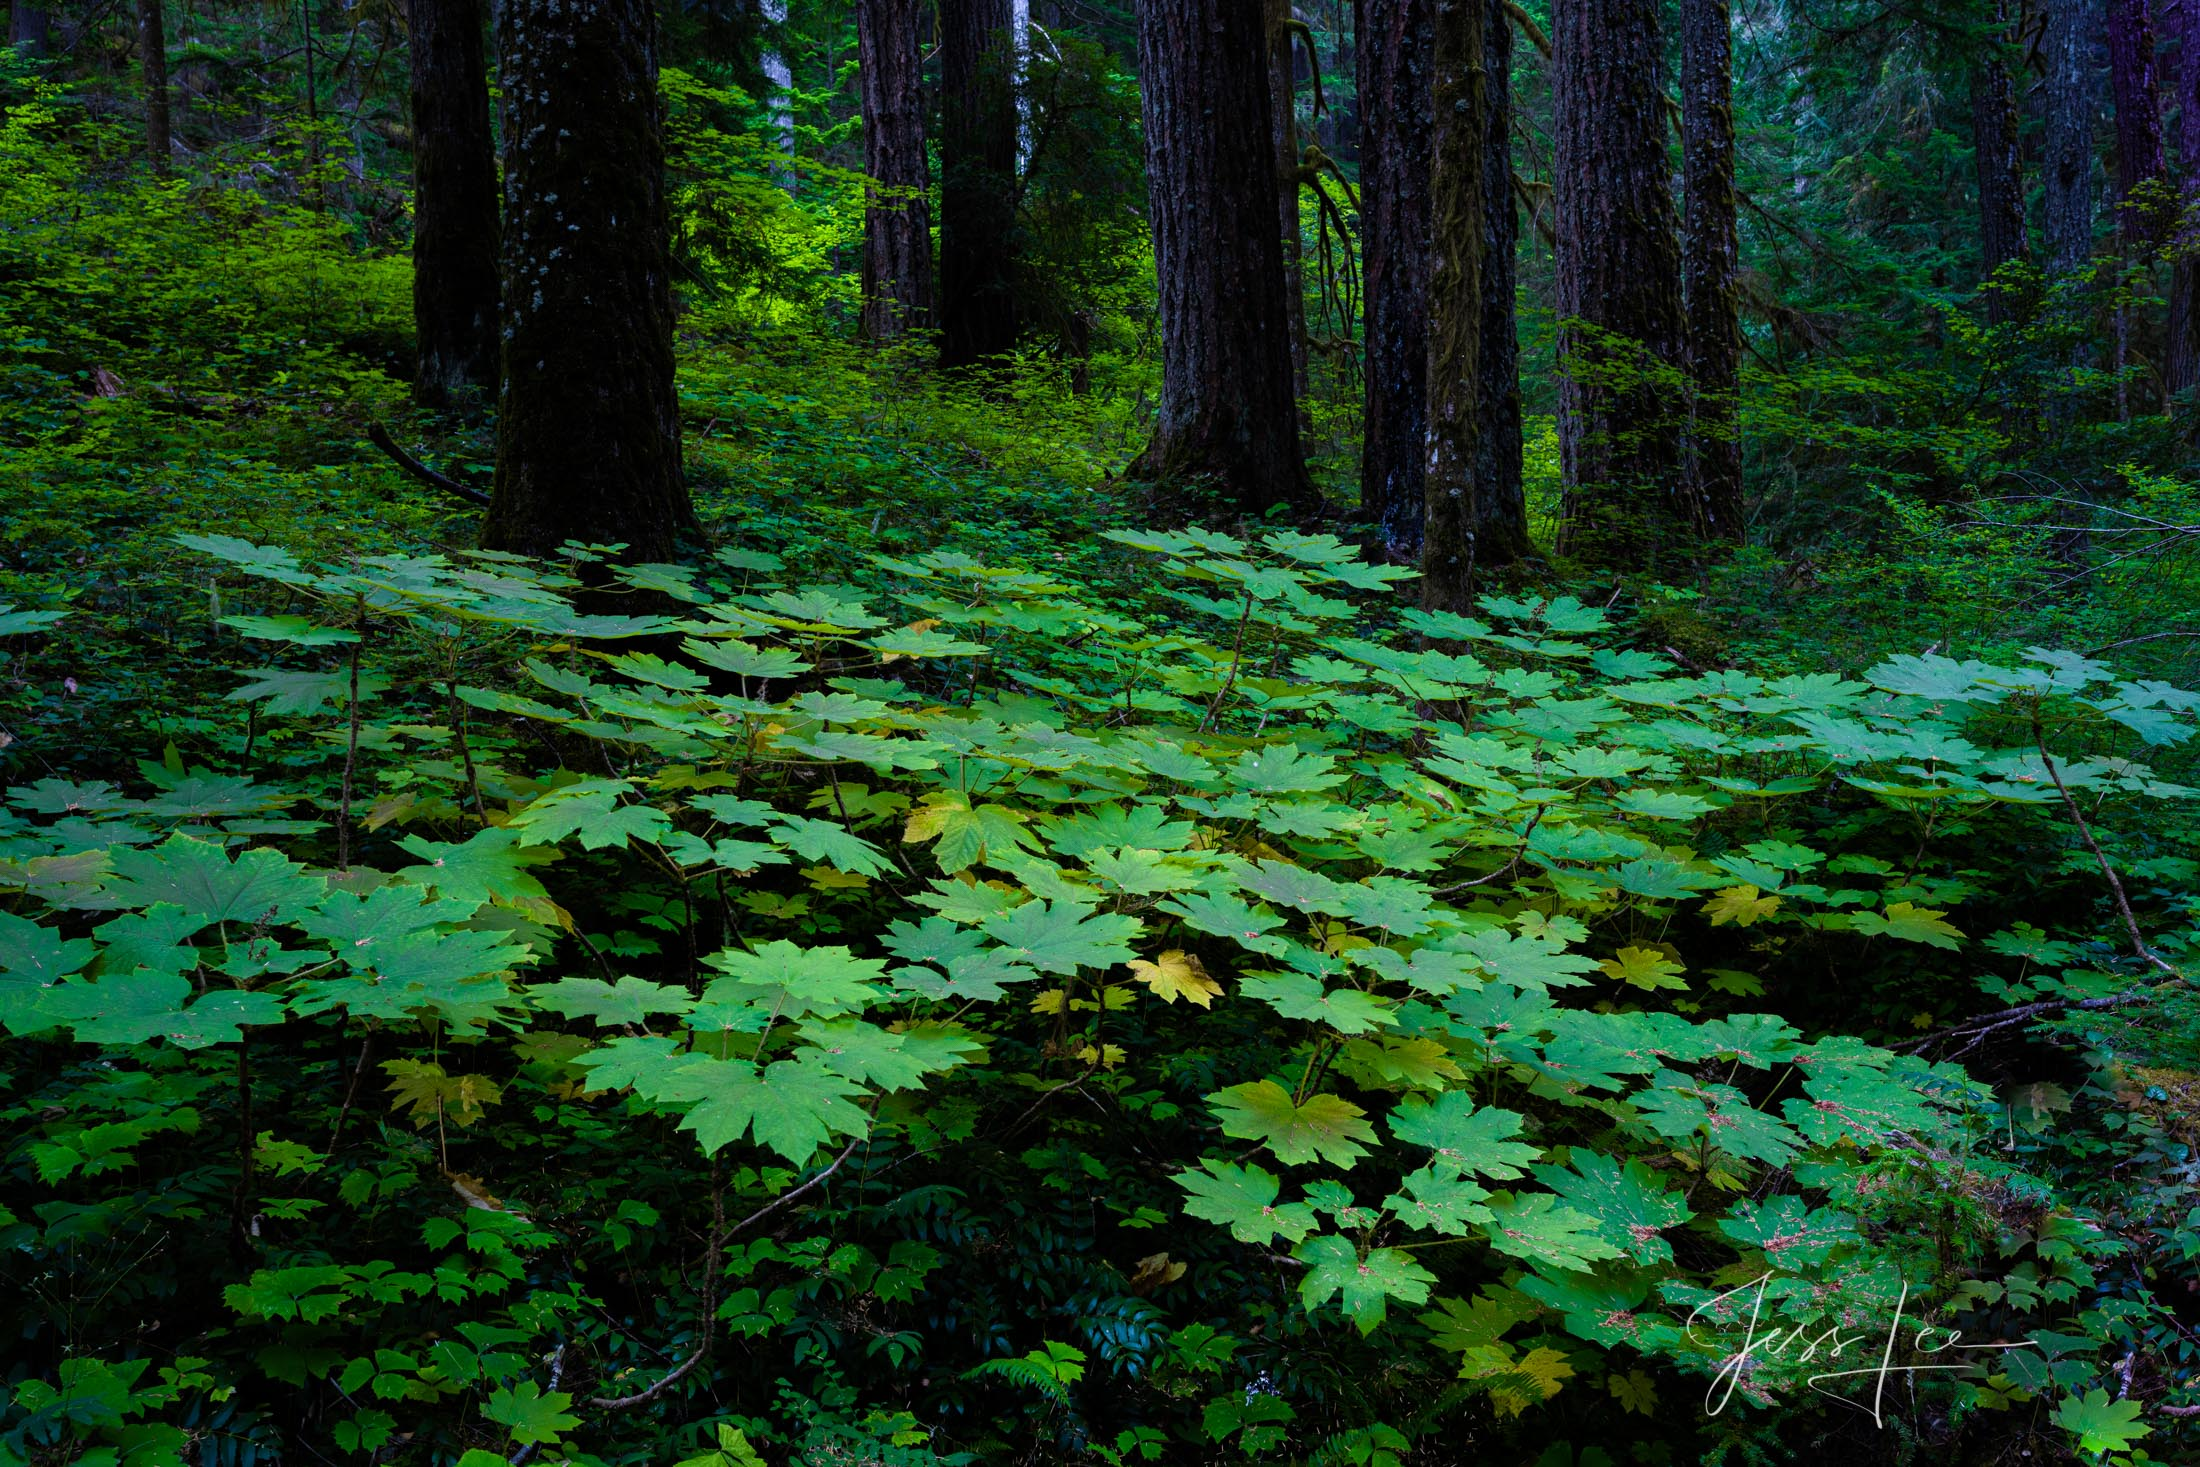 The Green Way,  A limited edition Fine Art Photographic Print of the forest on the slopes of Mt Rainer National Park.